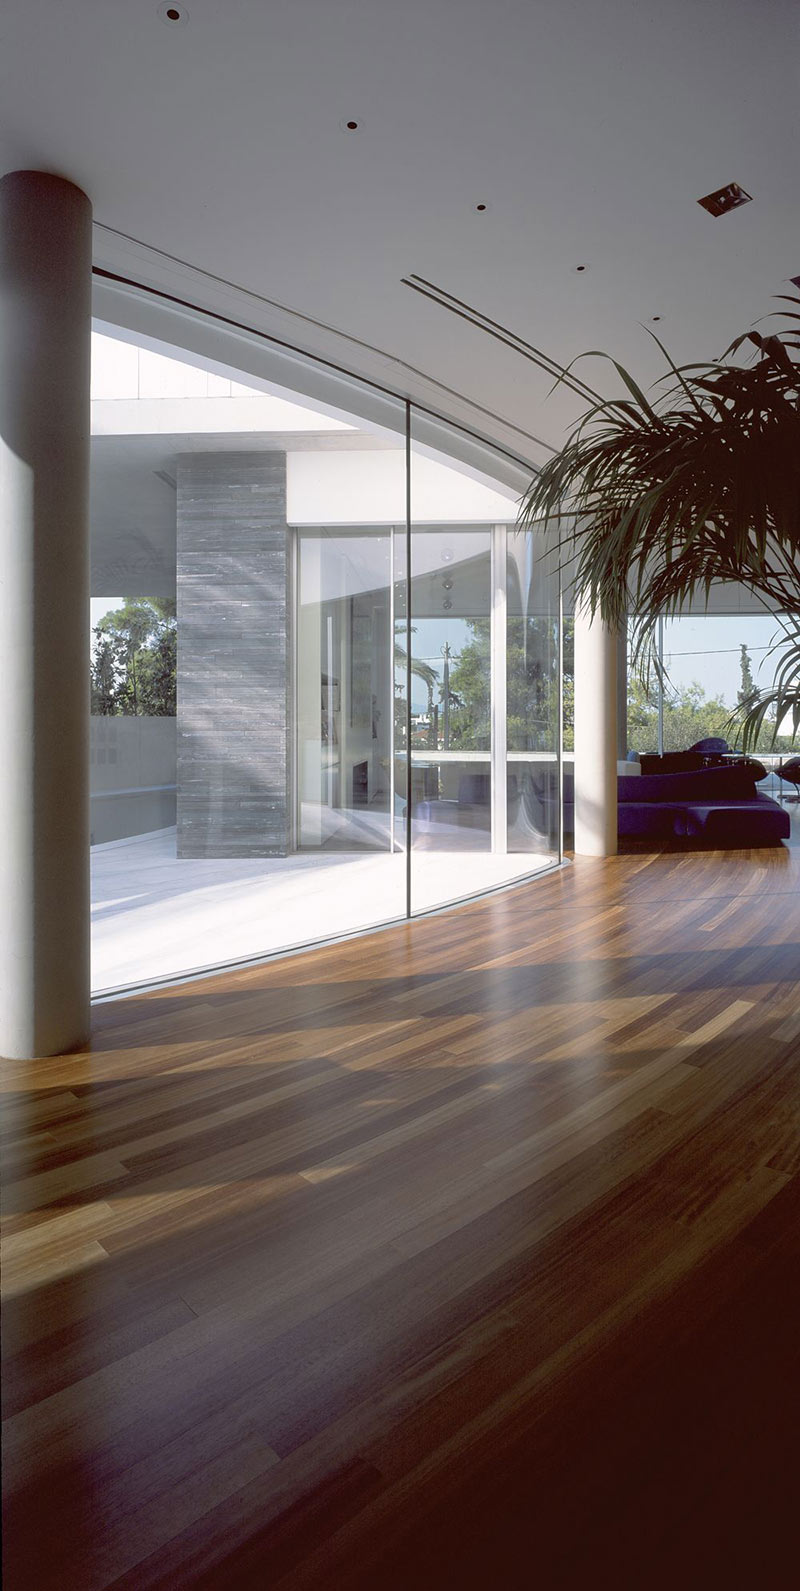 Curved Wood Flooring, Glass Walls, Psychiko House, Athens by Divercity Architects